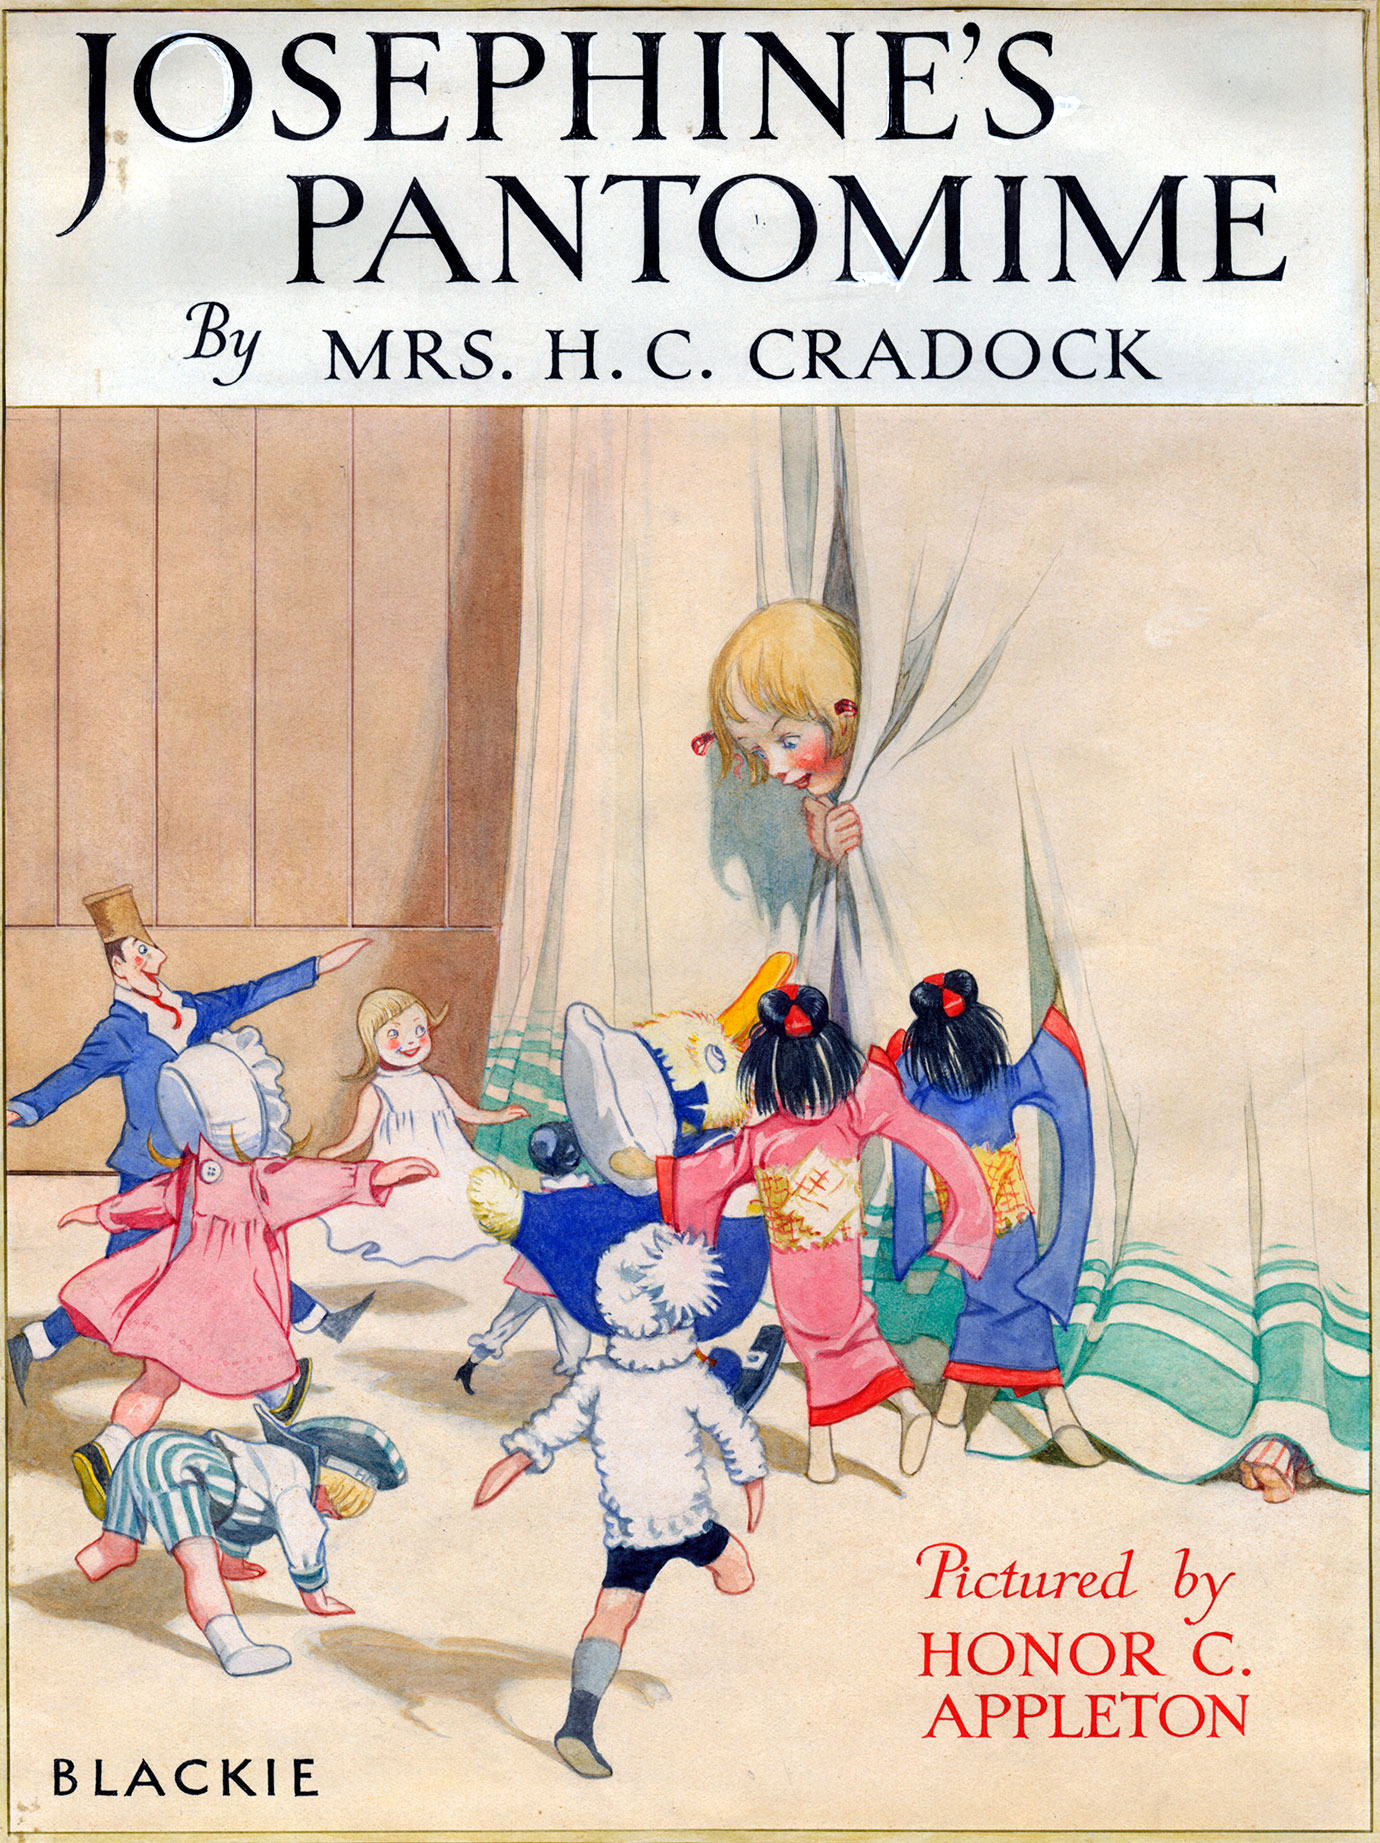 Josephine's Pantomime Book Cover Artwork